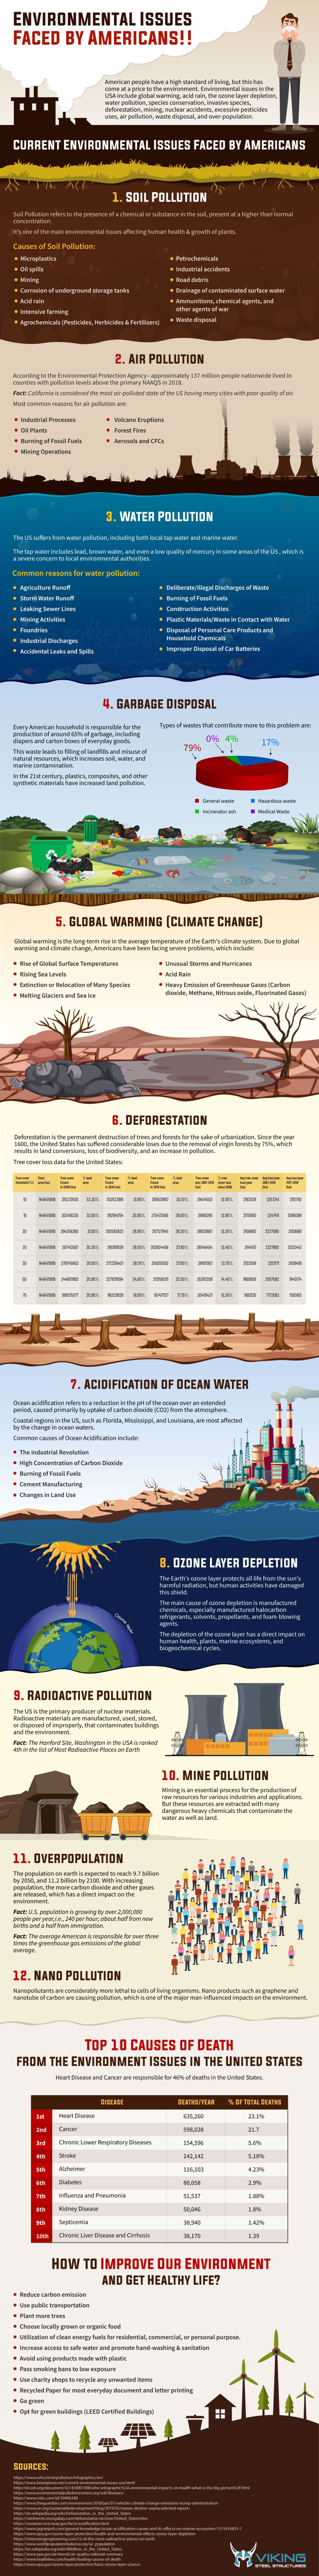 The Price of Progress: America's Worrying Environmental Issues - Infographic